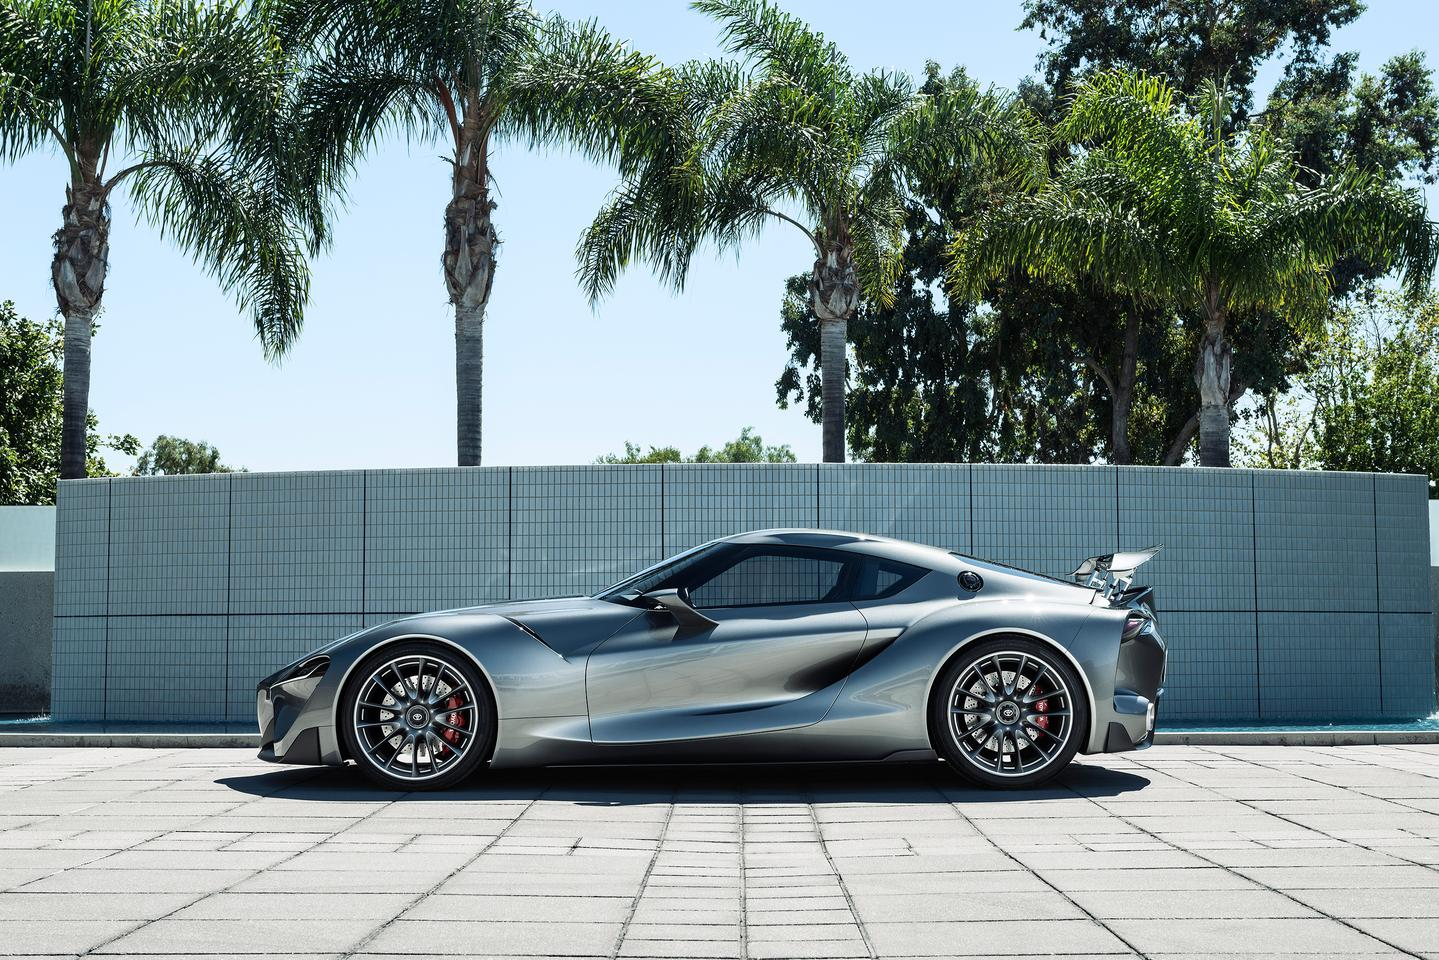 Toyota debuted the new FT-1 in Monterey